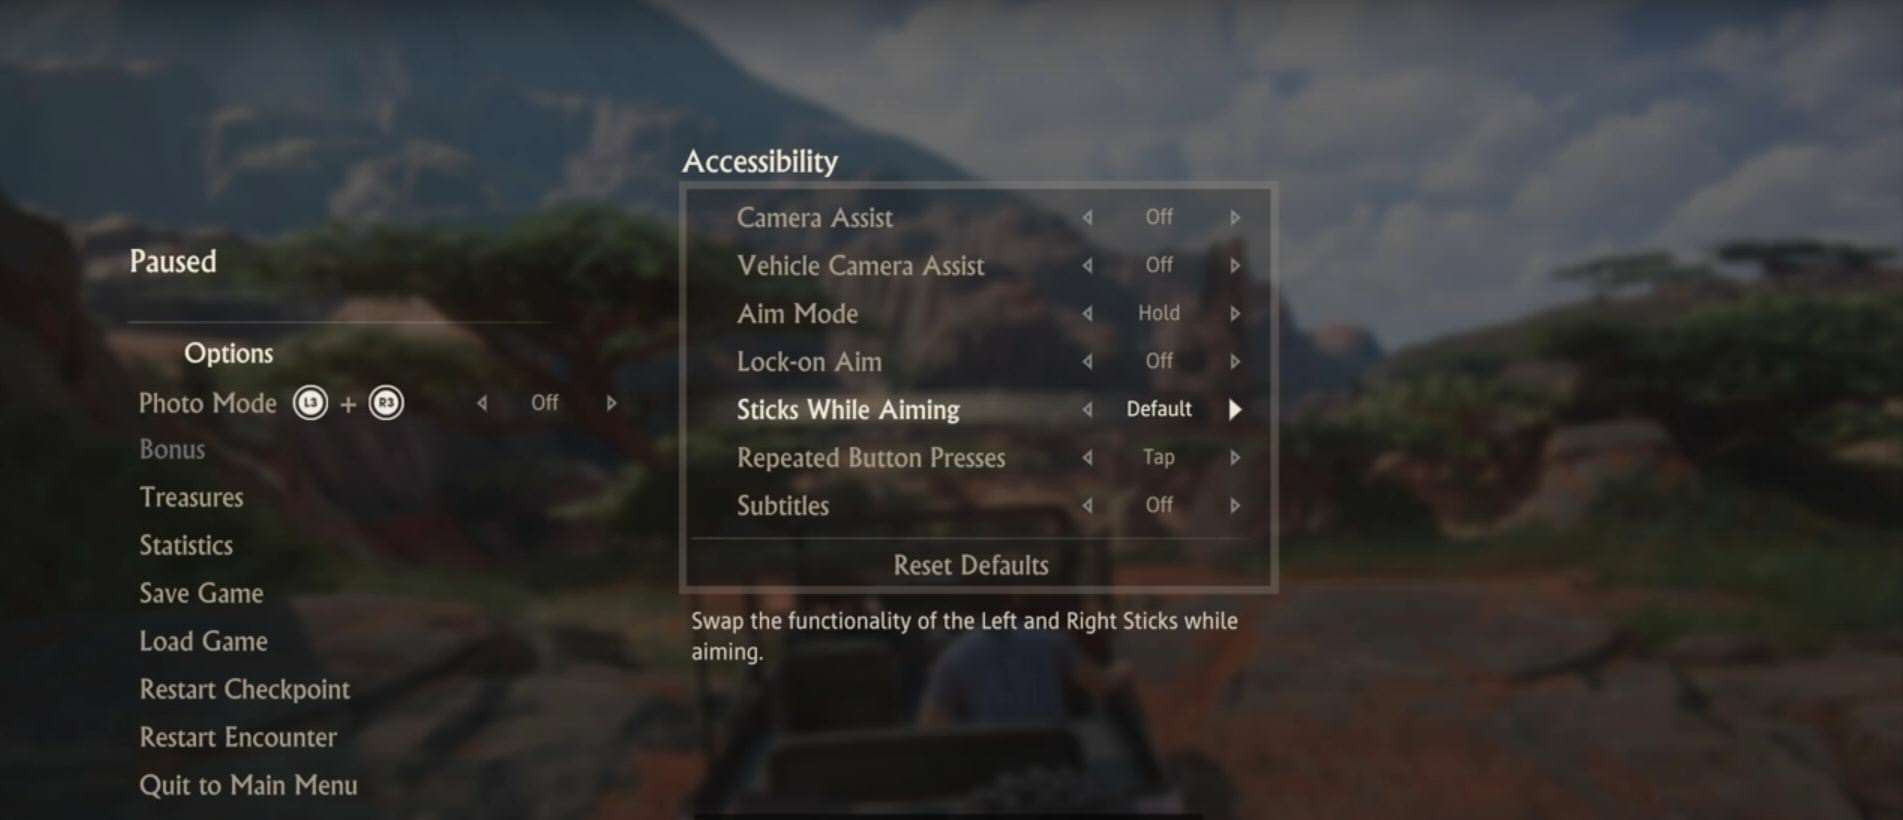 How One Disabled Player Inspired Uncharted 4s Accessibility Options gcot8xisvyistdqslnve